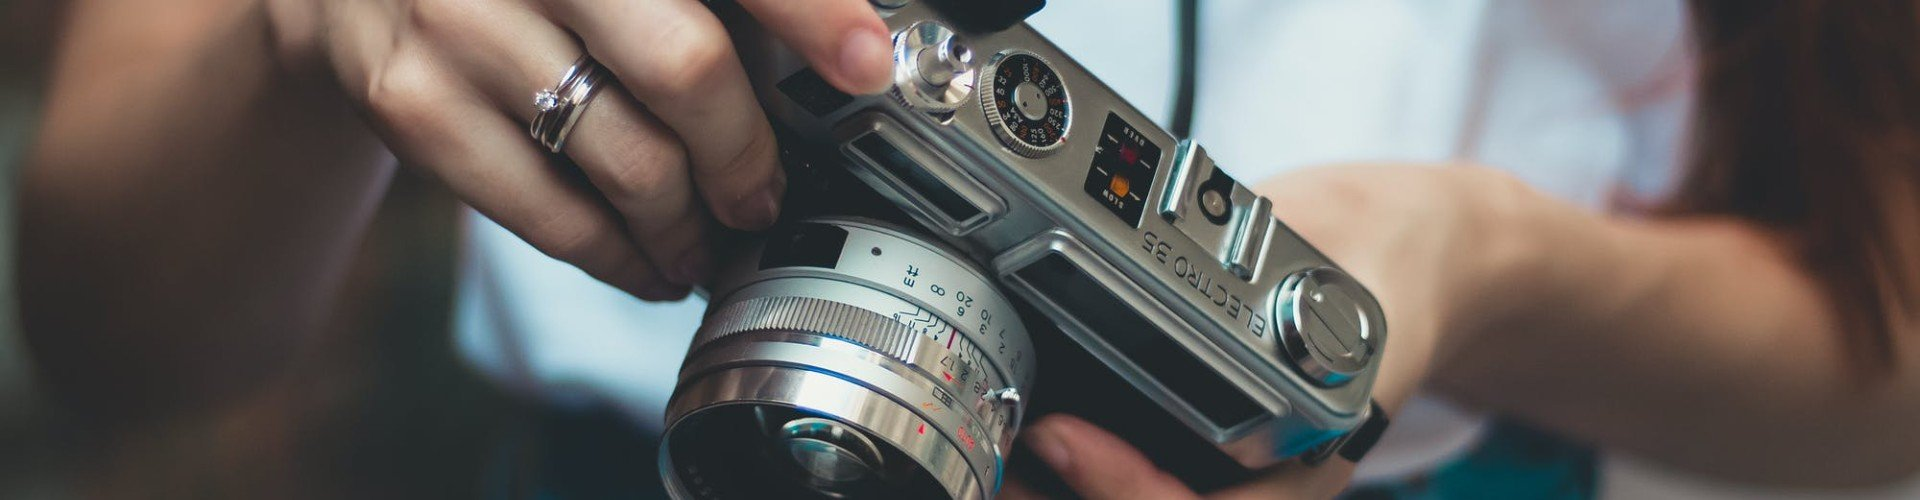 Photographer Cover Letter: Examples & Writing Guide